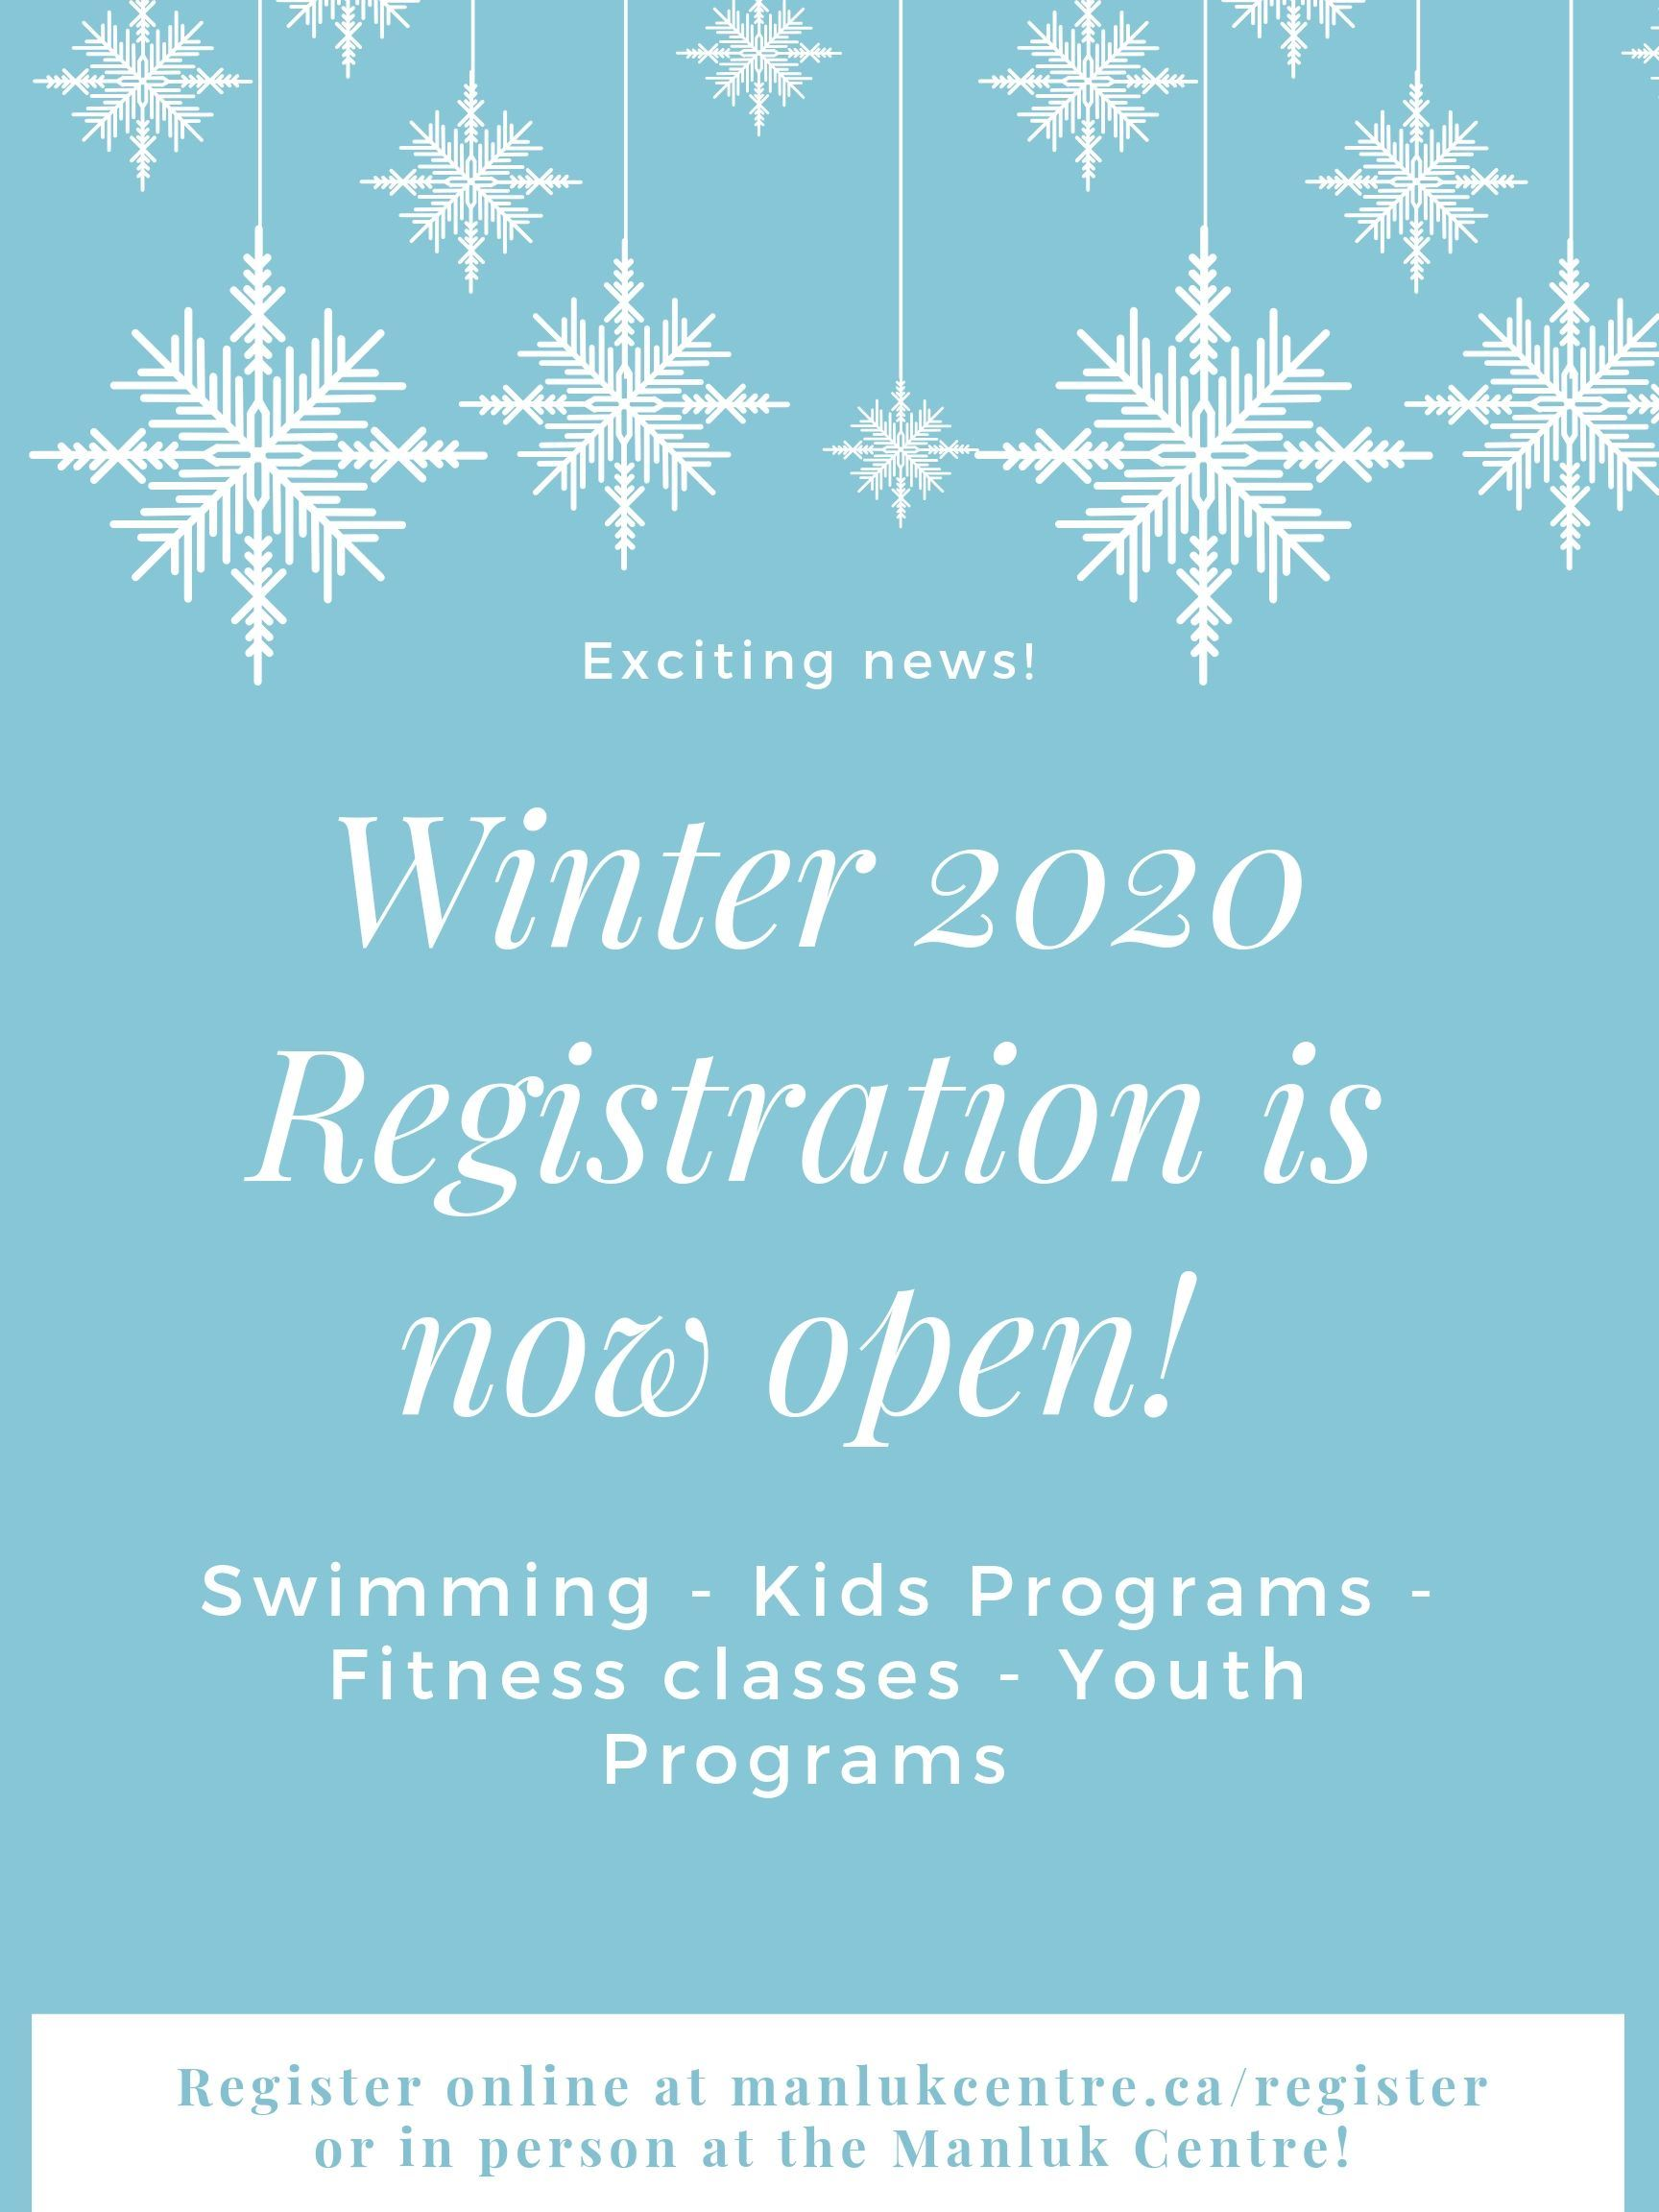 Winter 2020 Registration is now open!